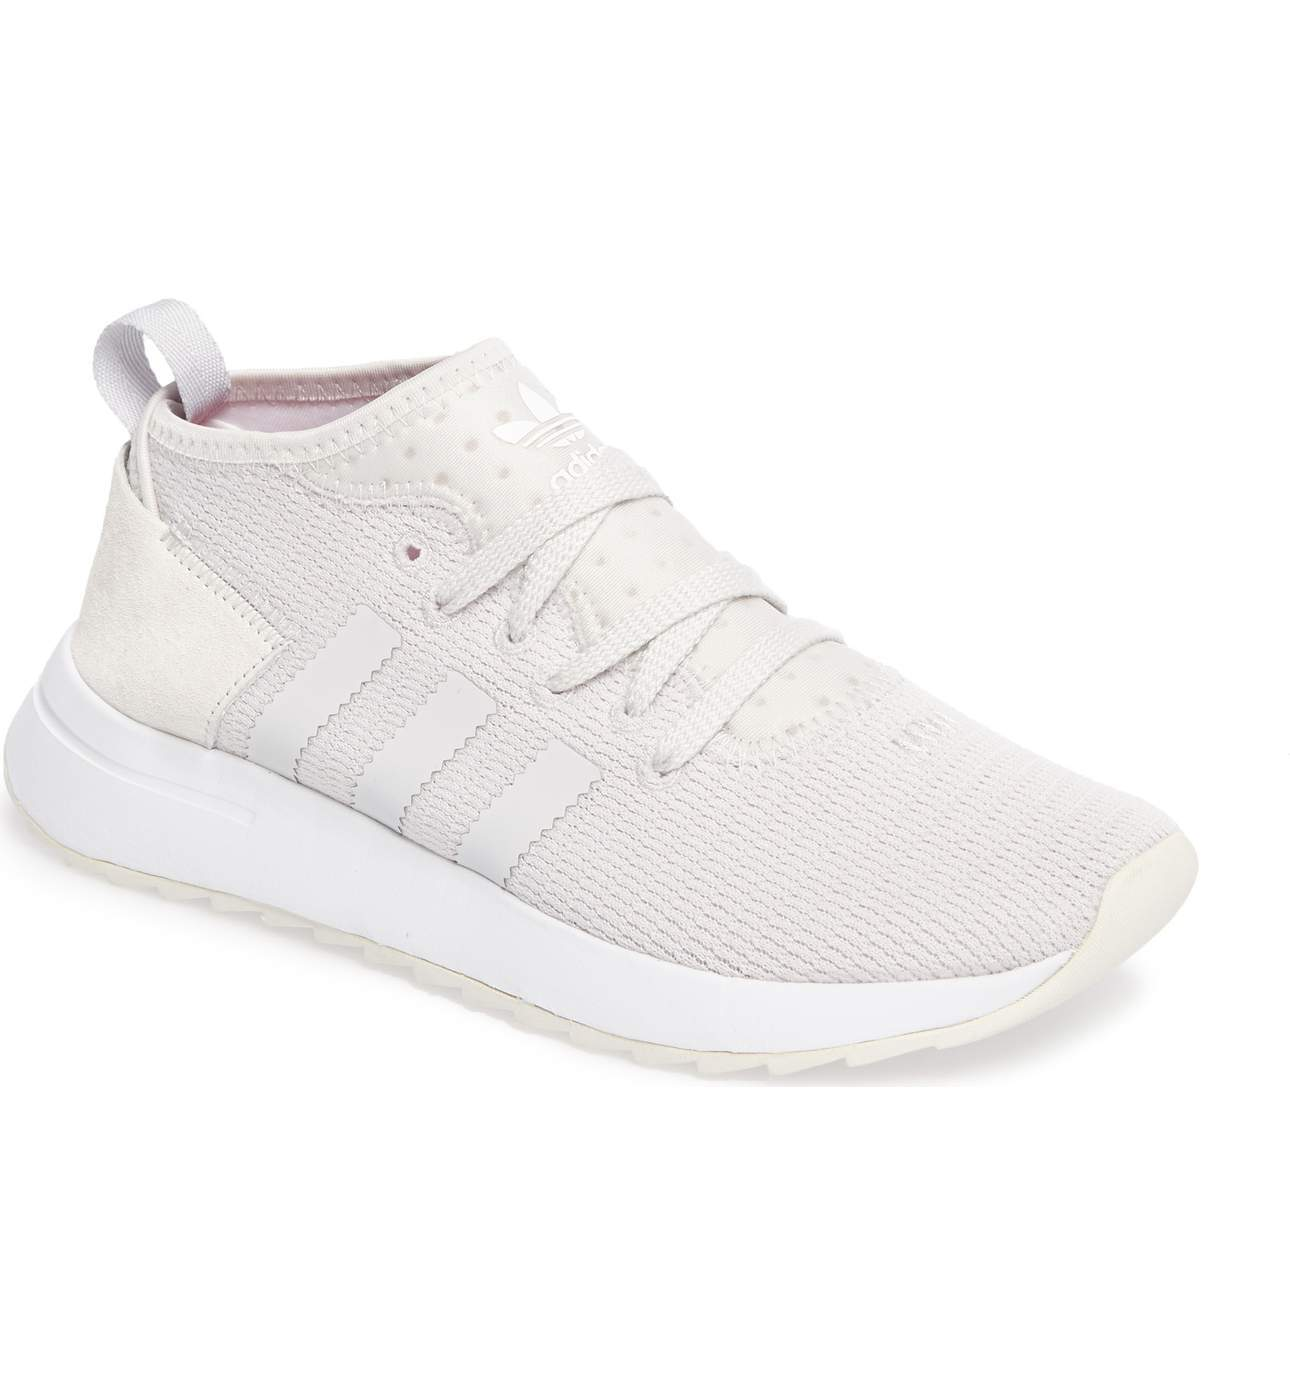 Women's Adidas Flashback MID Runners Comfortable The most popular shoes for men and women